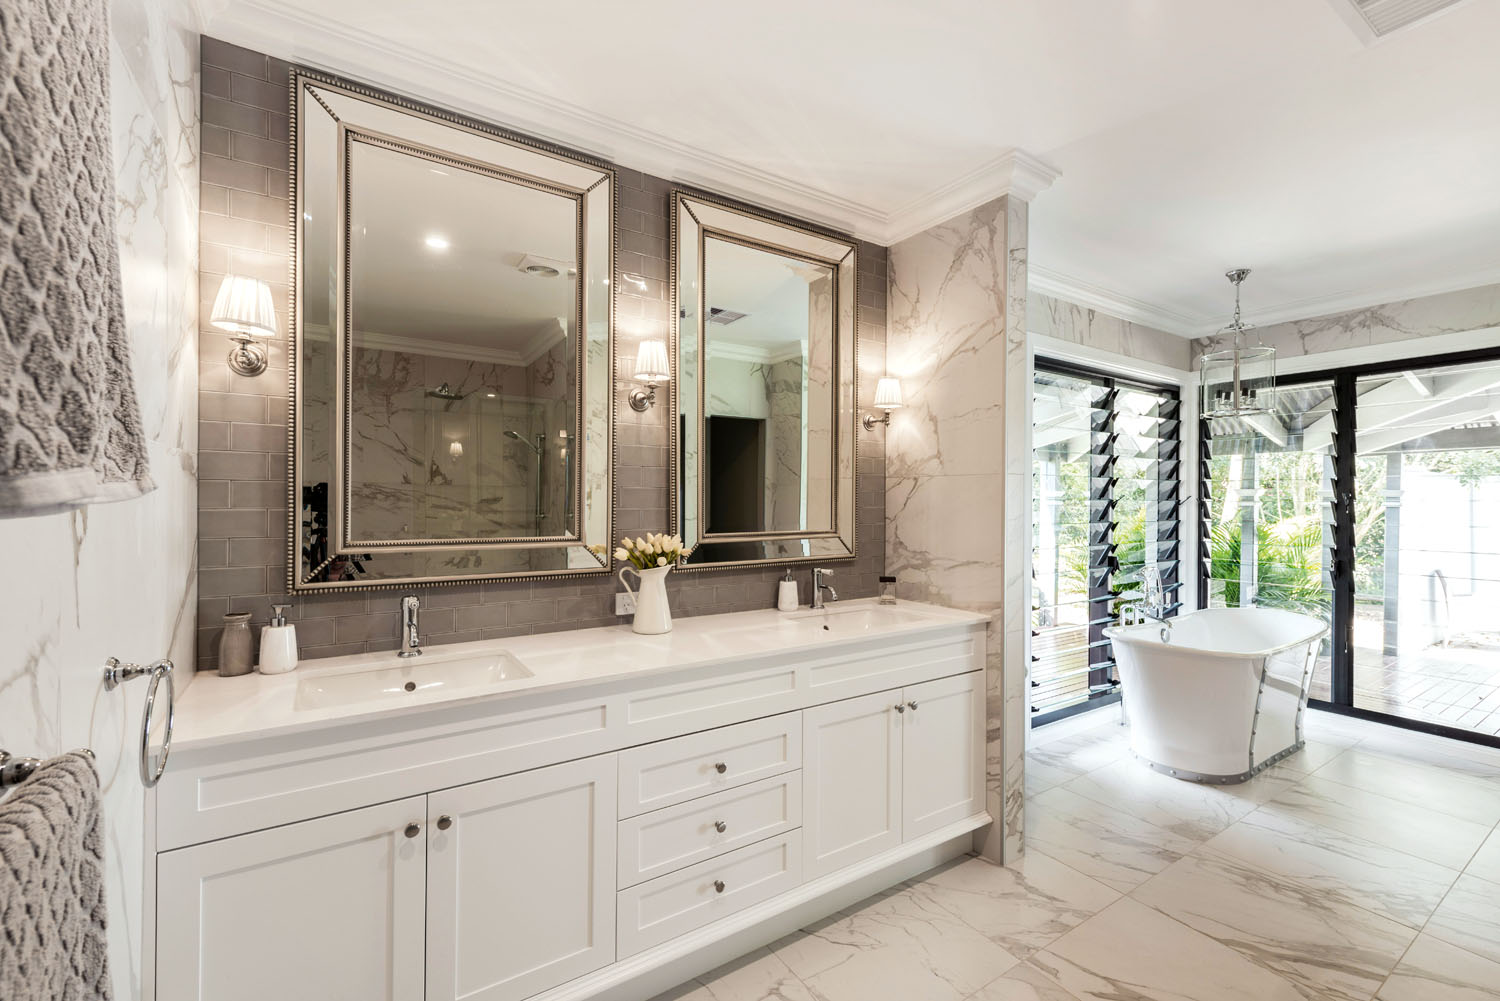 bath and kitchen cabinets hamptons style ensuite completehome 4336